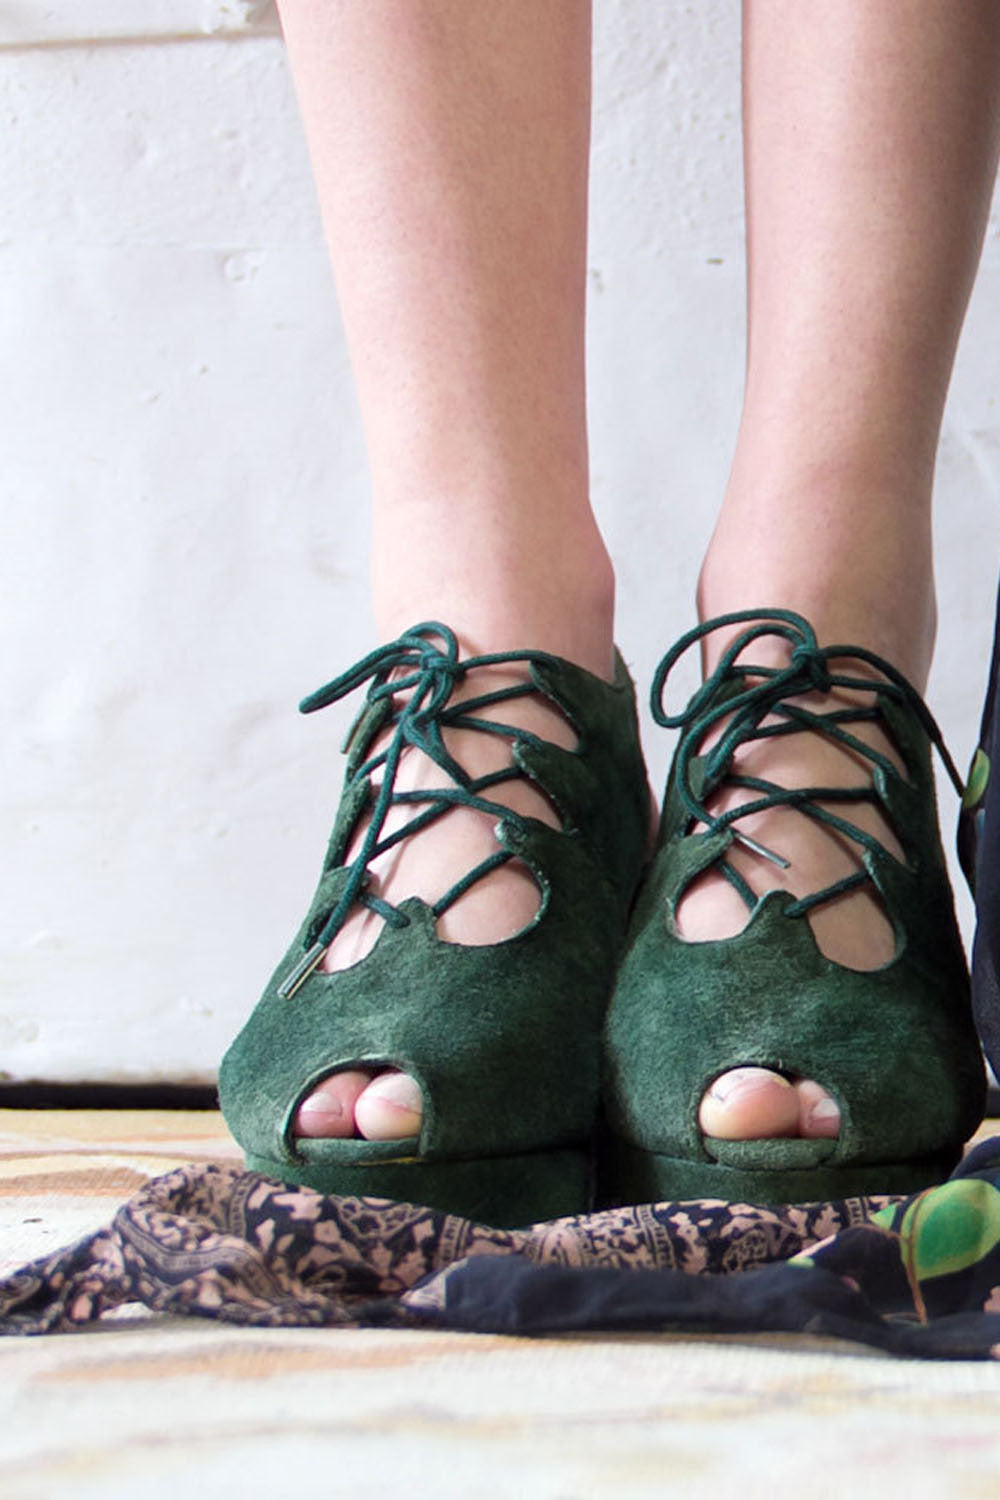 Green Suede Lace Up Platforms 7.5